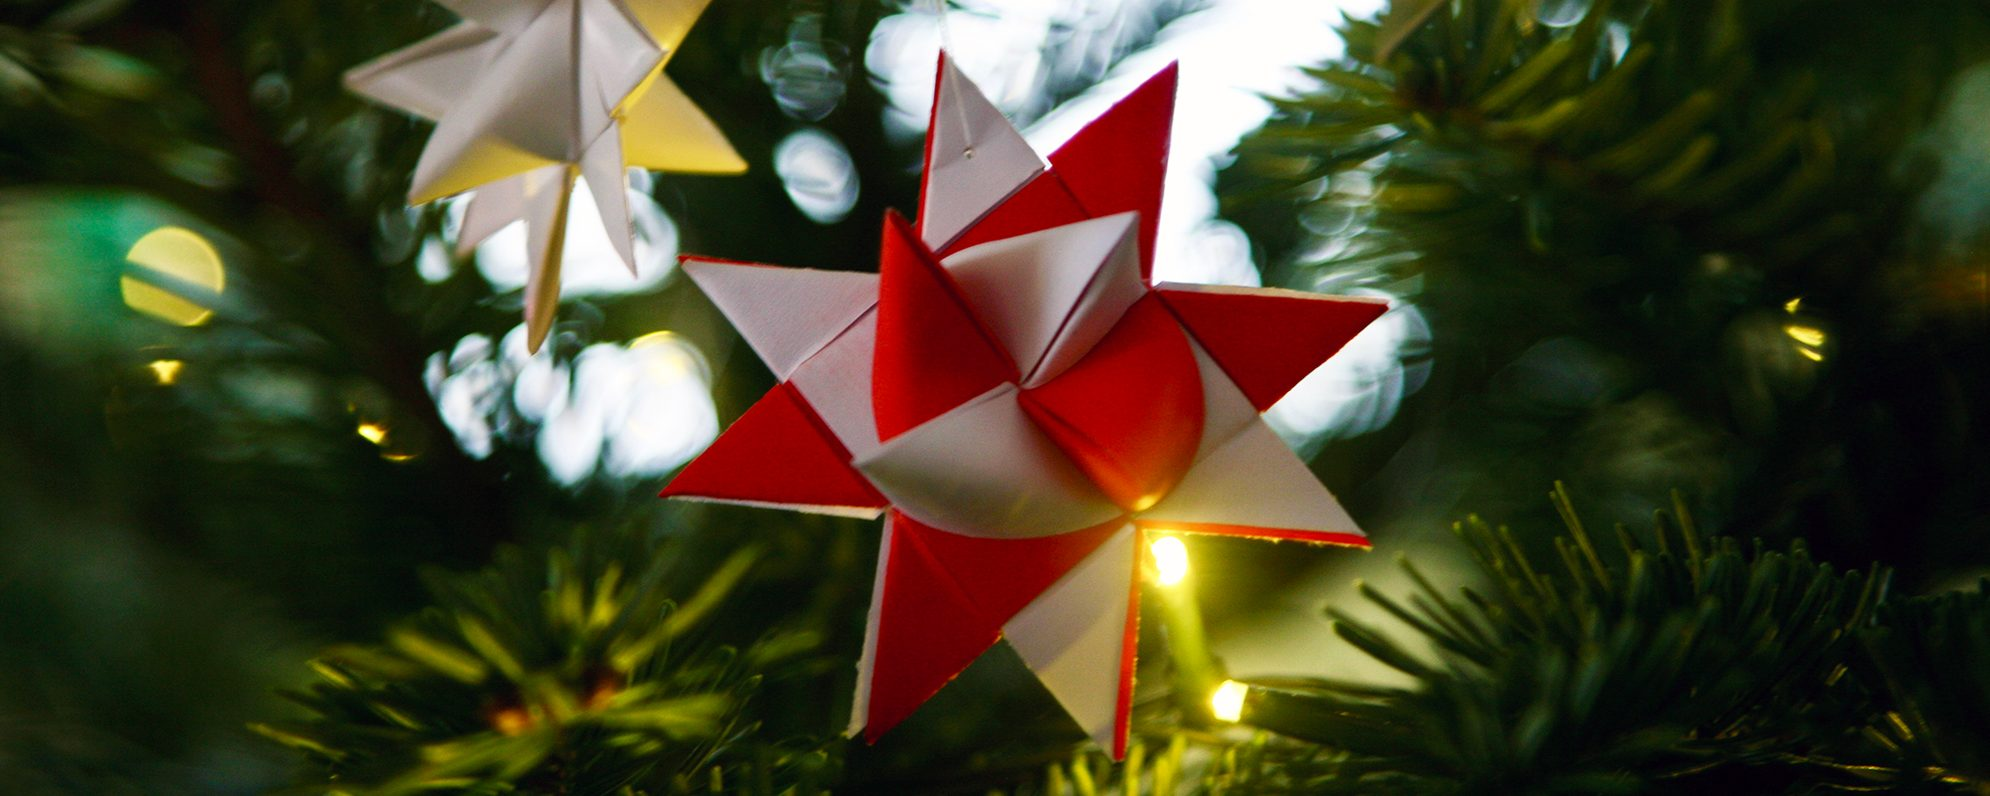 A close up of a white and red folded paper star decoration, handing on a Christmas tree.